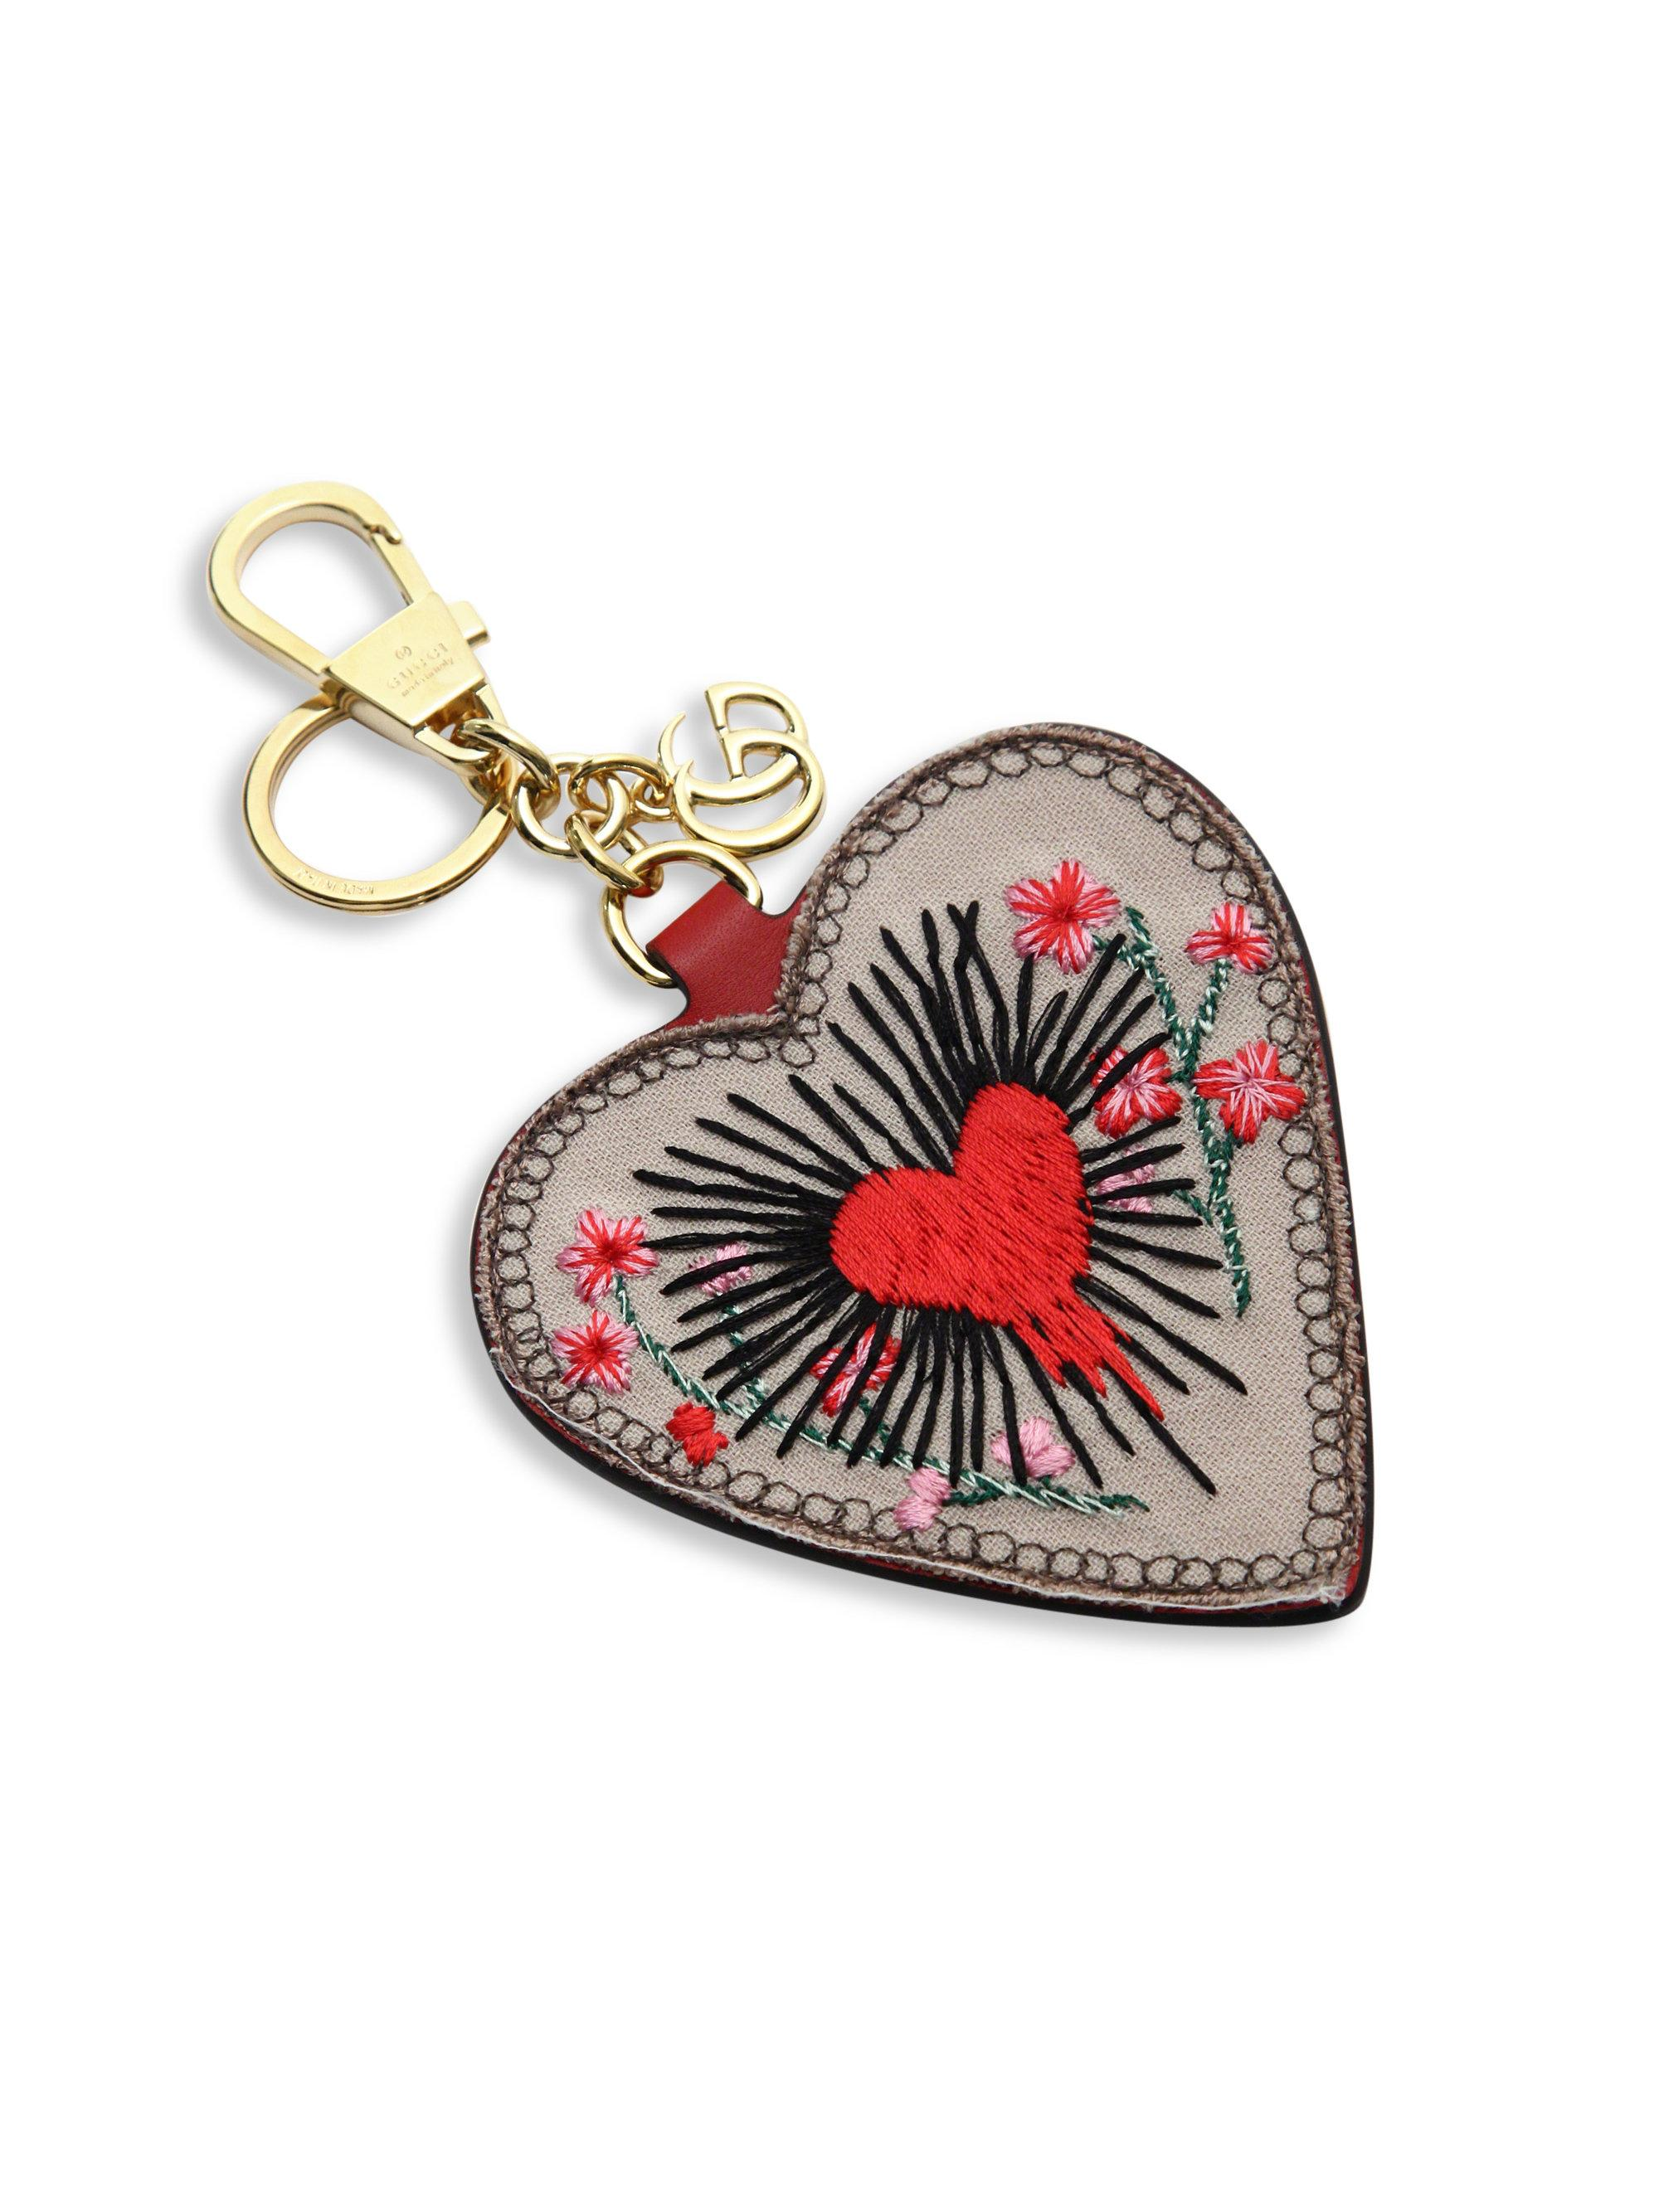 6d741bd3b0b Lyst - Gucci Embroidered Leather Heart Keychain in Red